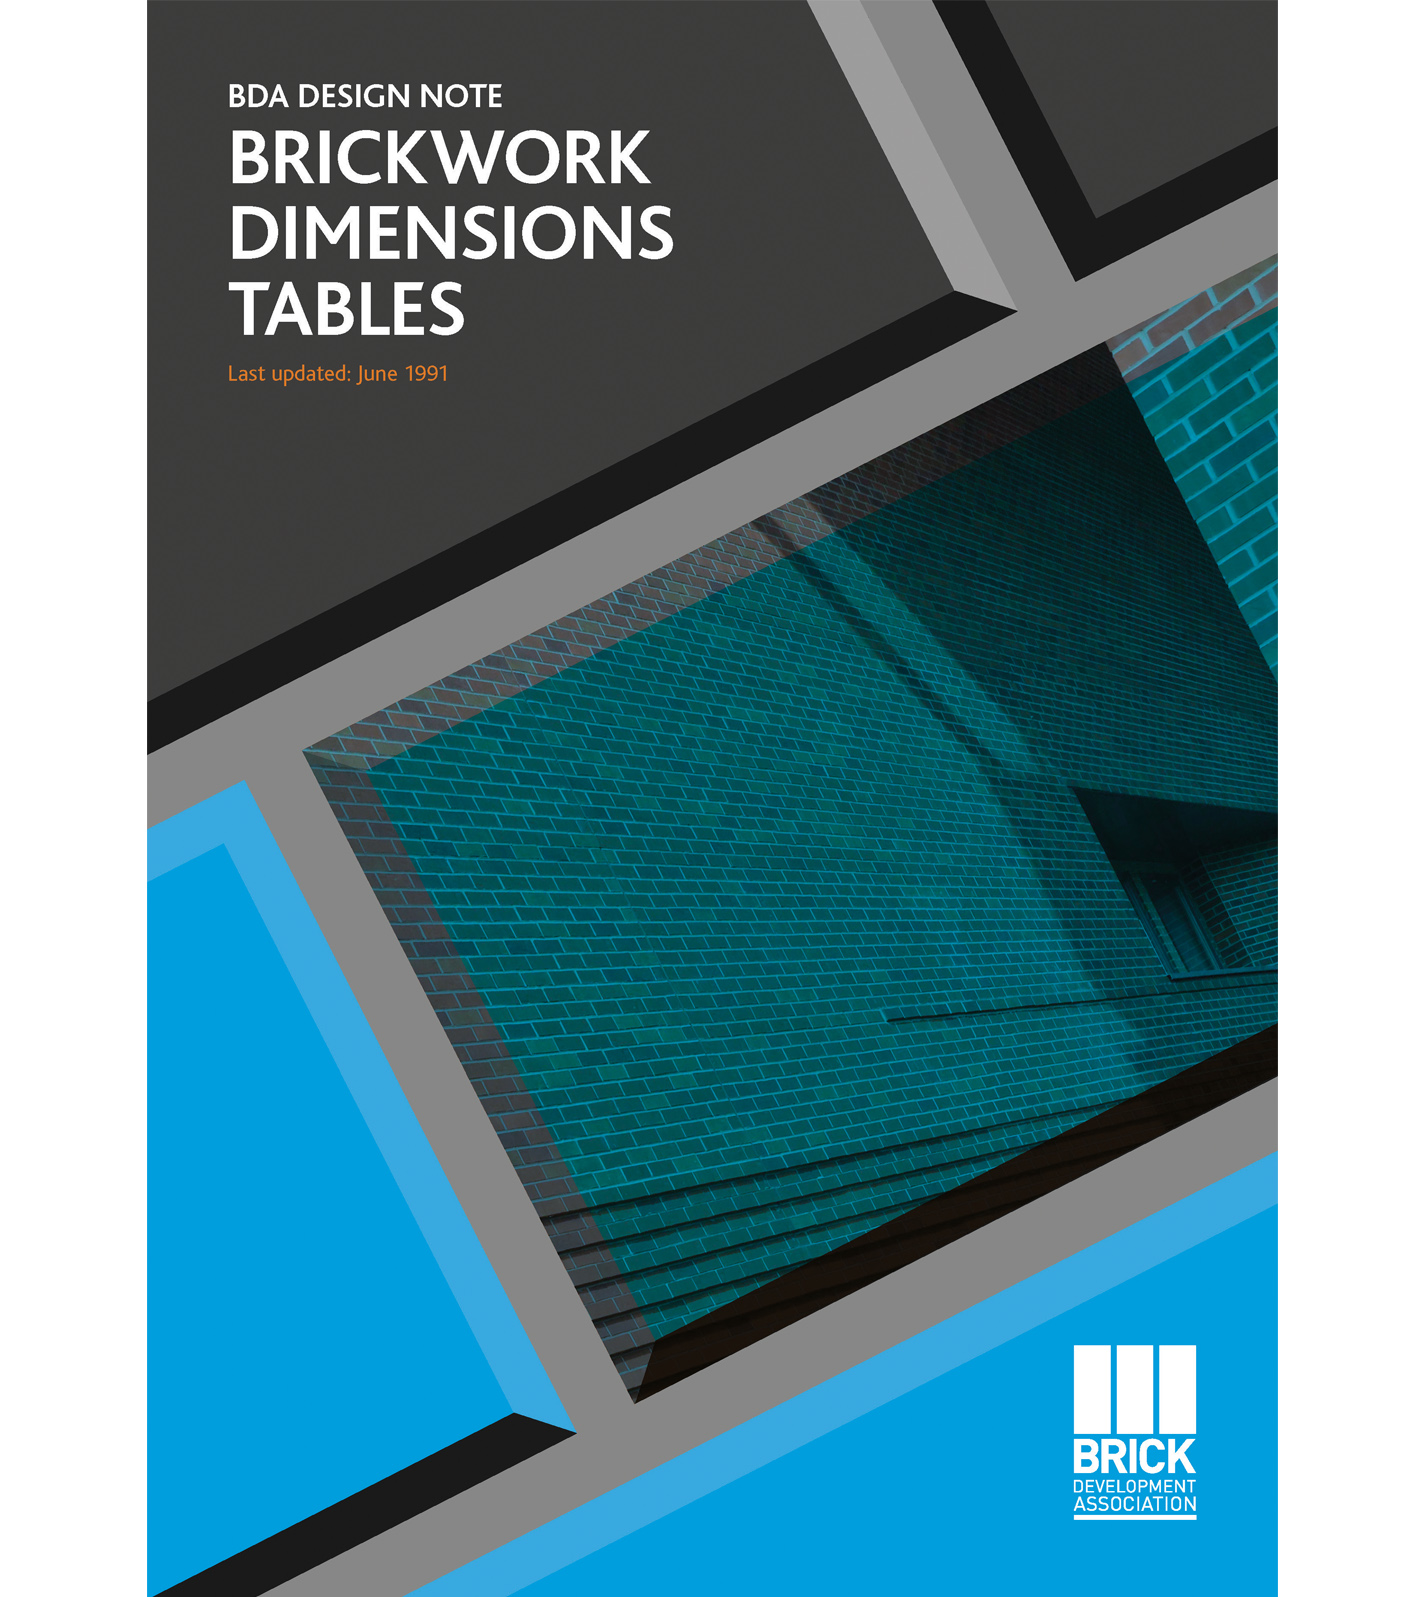 BRICKWORK DIMENSIONS TABLES